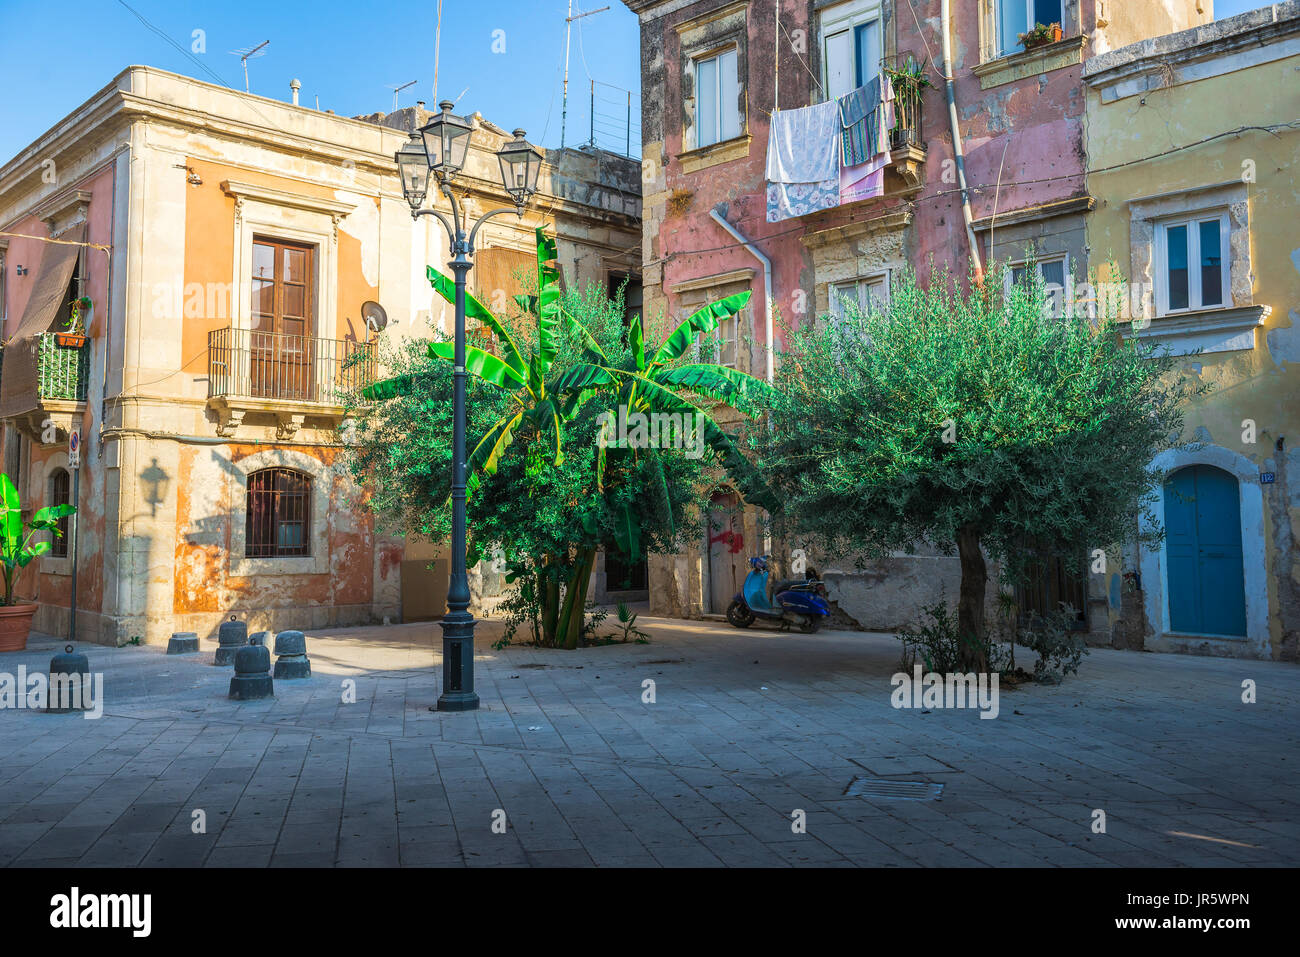 Ortigia Sicily old town, a small enclosed piazza in the historic old town quarter of Ortigia, Syracuse, Sicily. - Stock Image